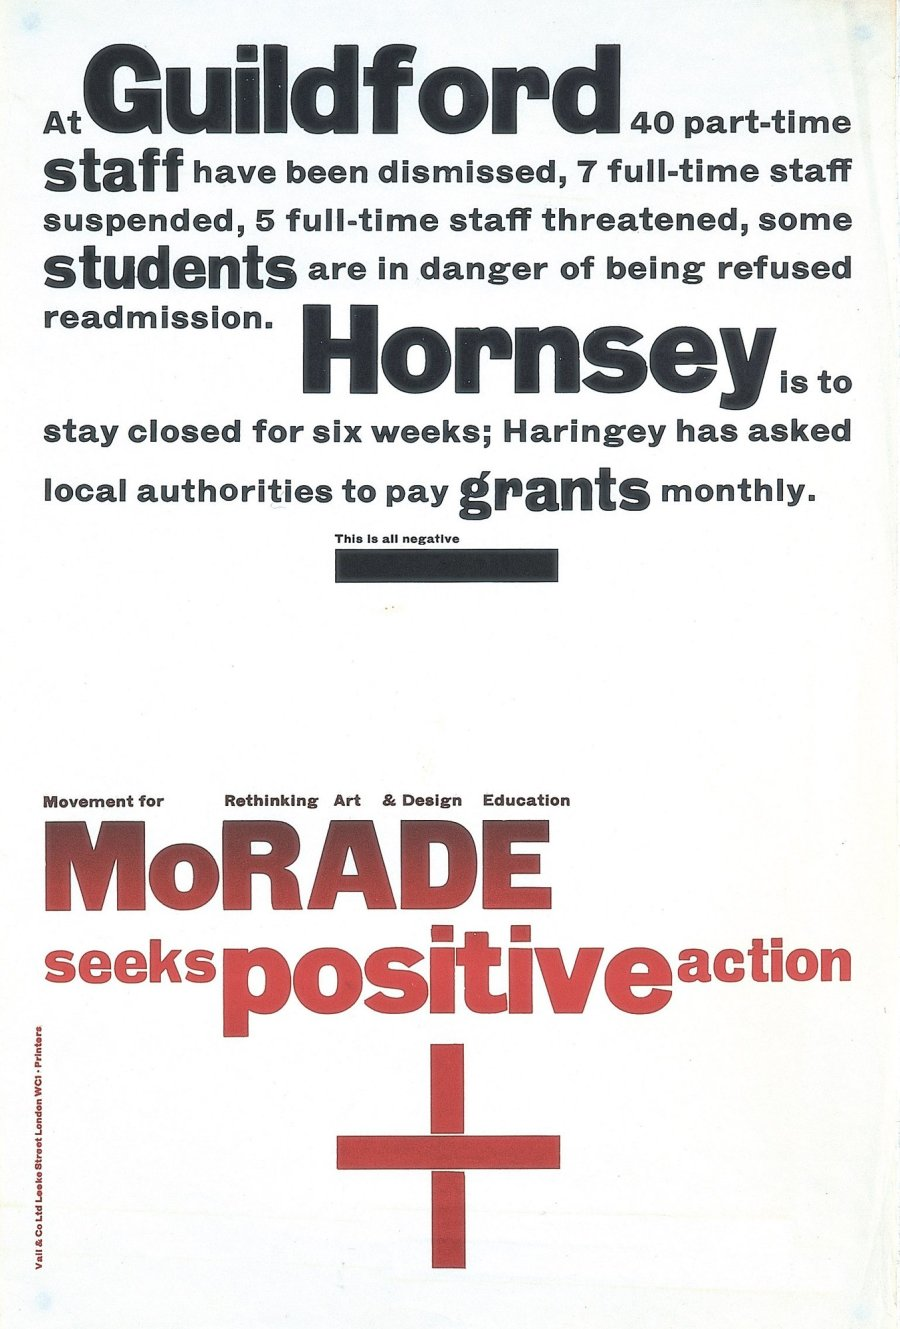 <p>MoRADE Seeks Positive Action poster for the Movement for Rethinking Art & Design Education. Design by Richard Hollis, 1968.</p>